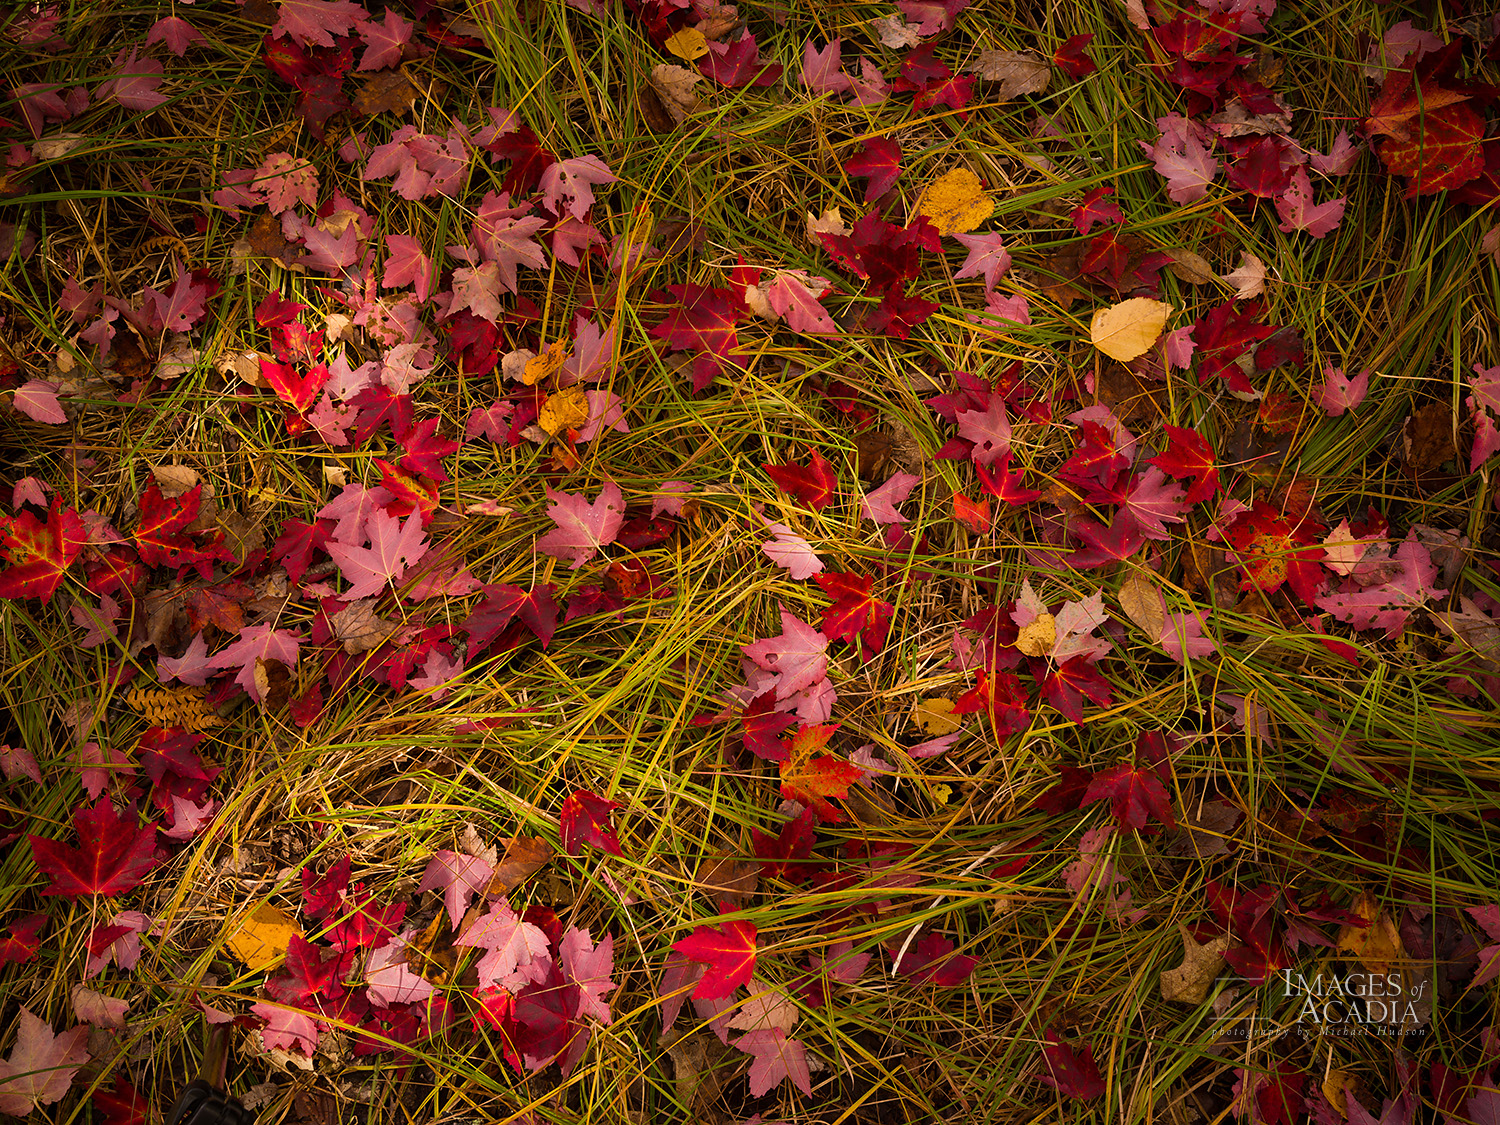 Fallen leaves on grass, Sieur de Monts